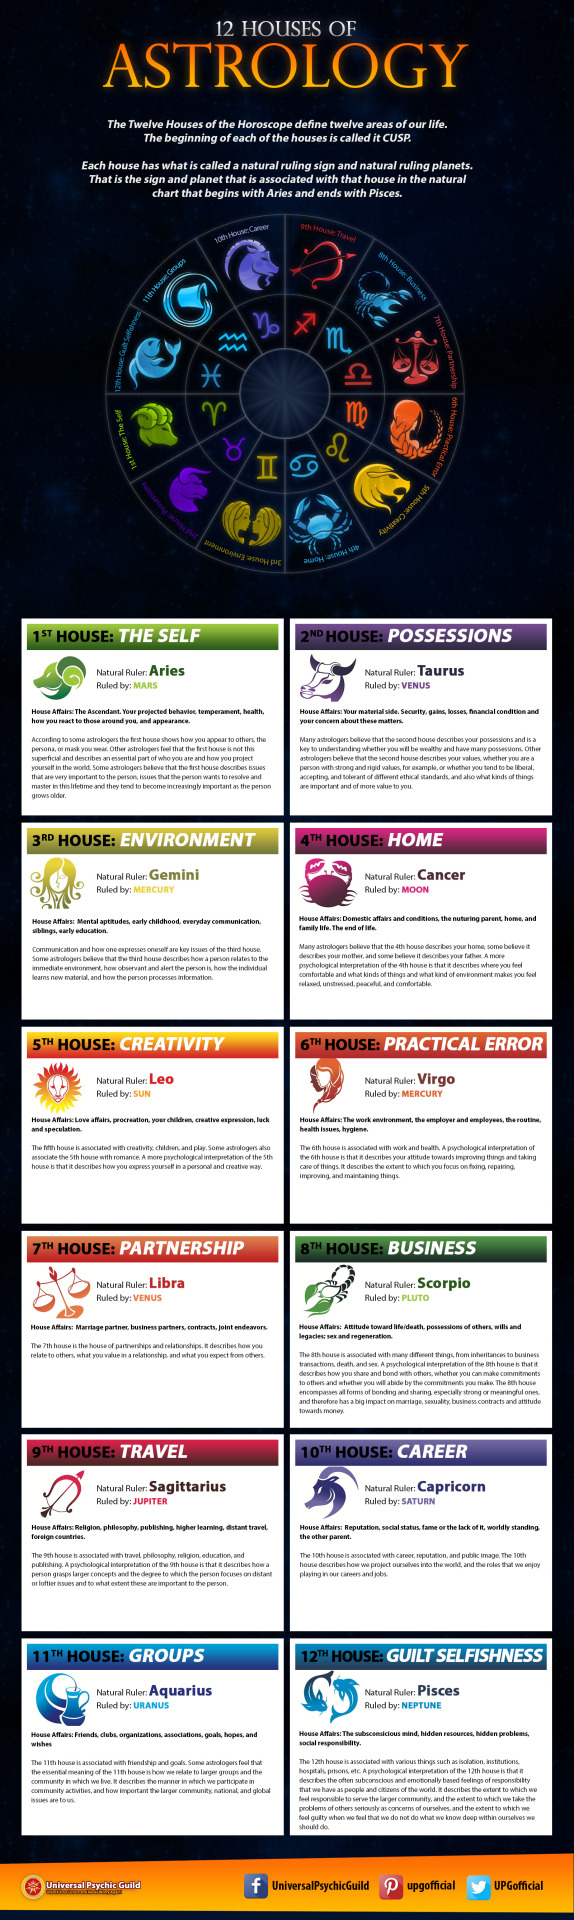 12 Houses of Astrology Explained - InfographicHave you ever wondered how astrologers read your #zodiacsigns for the coming days and weeks? They refer to the 12 #Astrology Houses!Learn more about #AstrologyHouses! Read our Blog Post! - http://www.psychicguild.com/blog/astrology-signs/12-astrology-houses-explained/